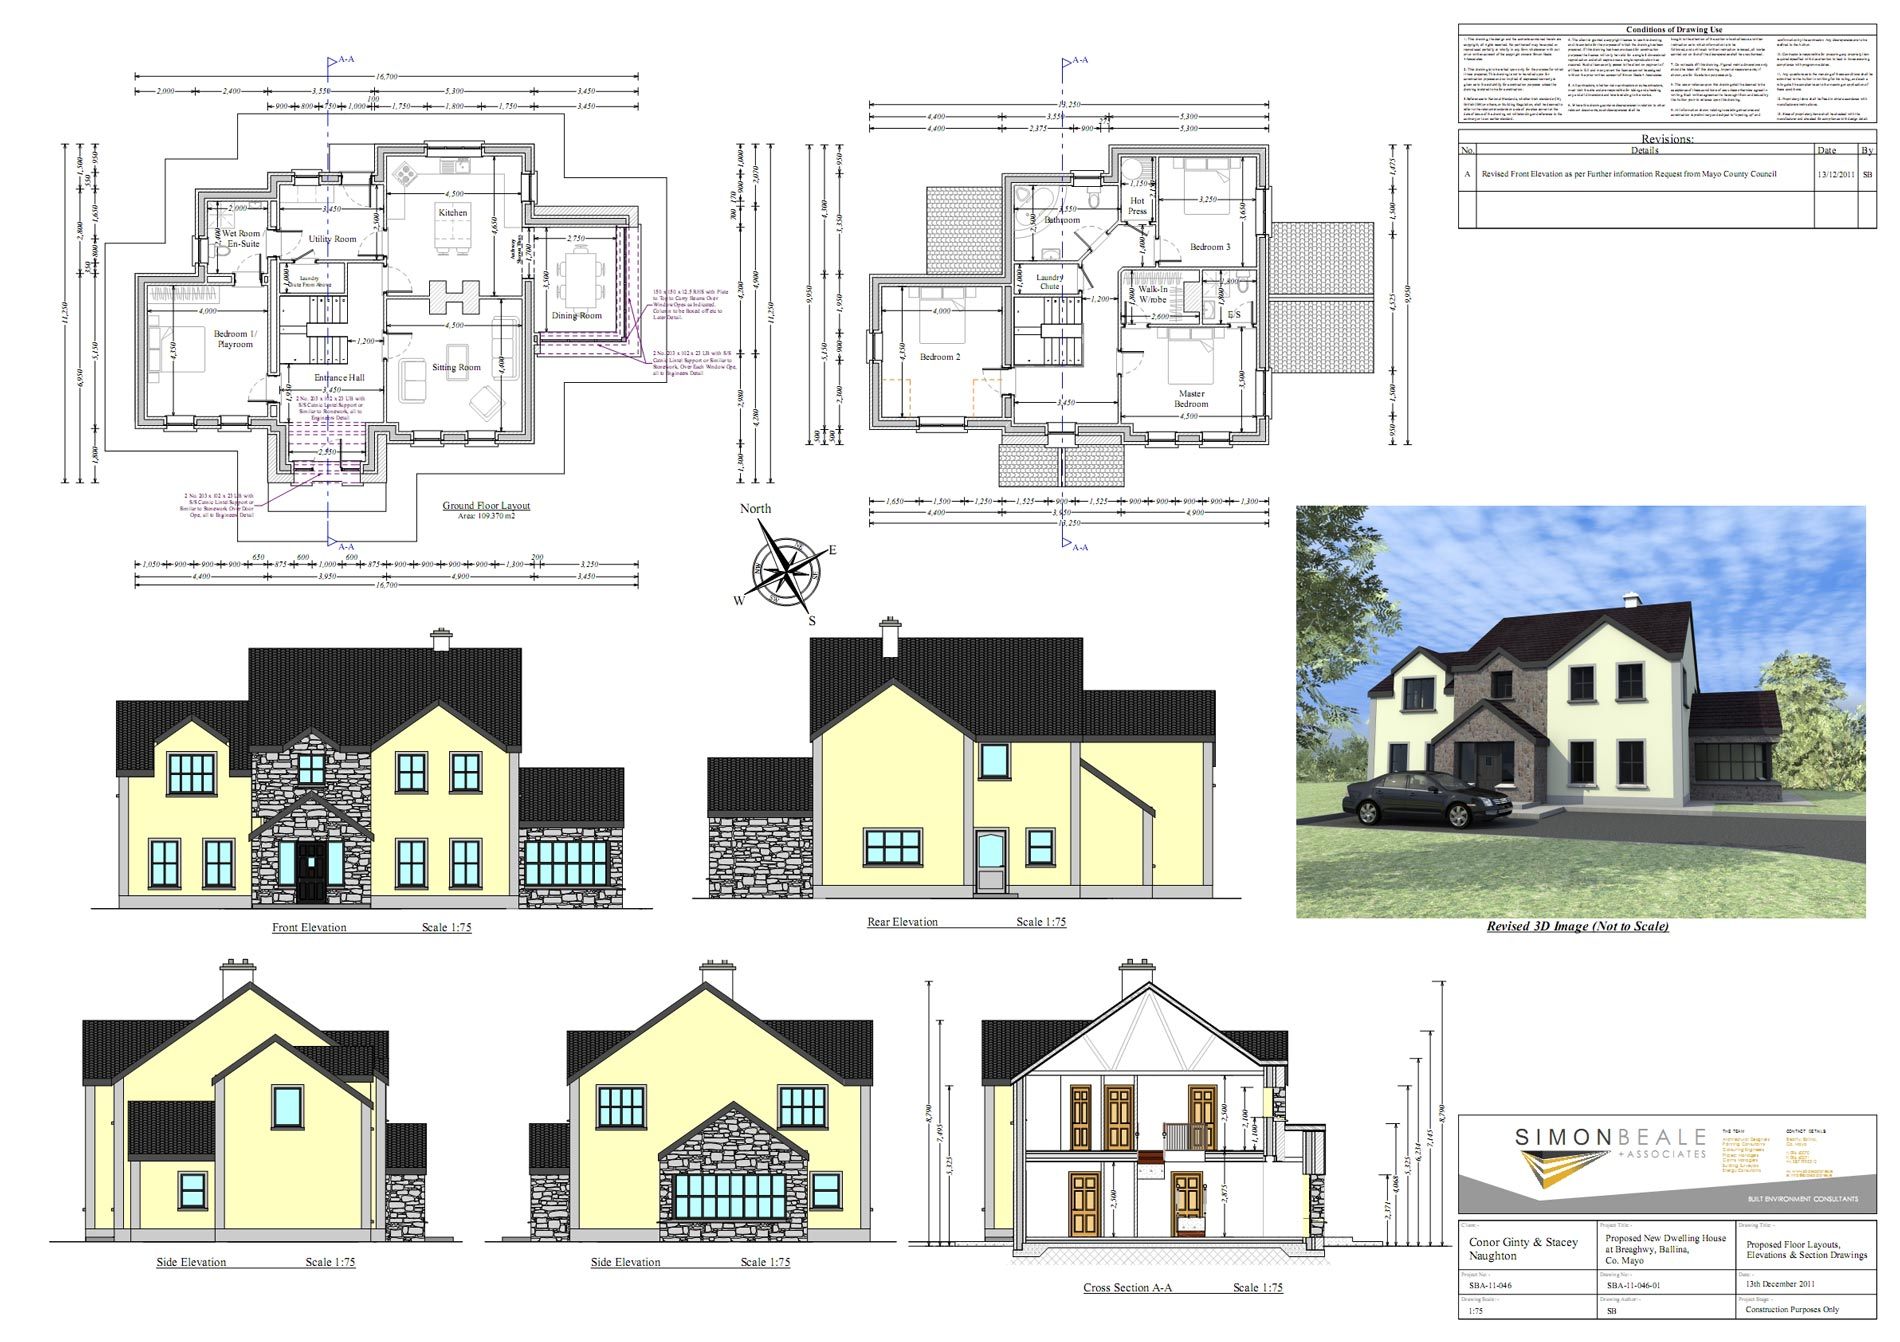 01_-_house_plans_2012-03-27_pagenumber